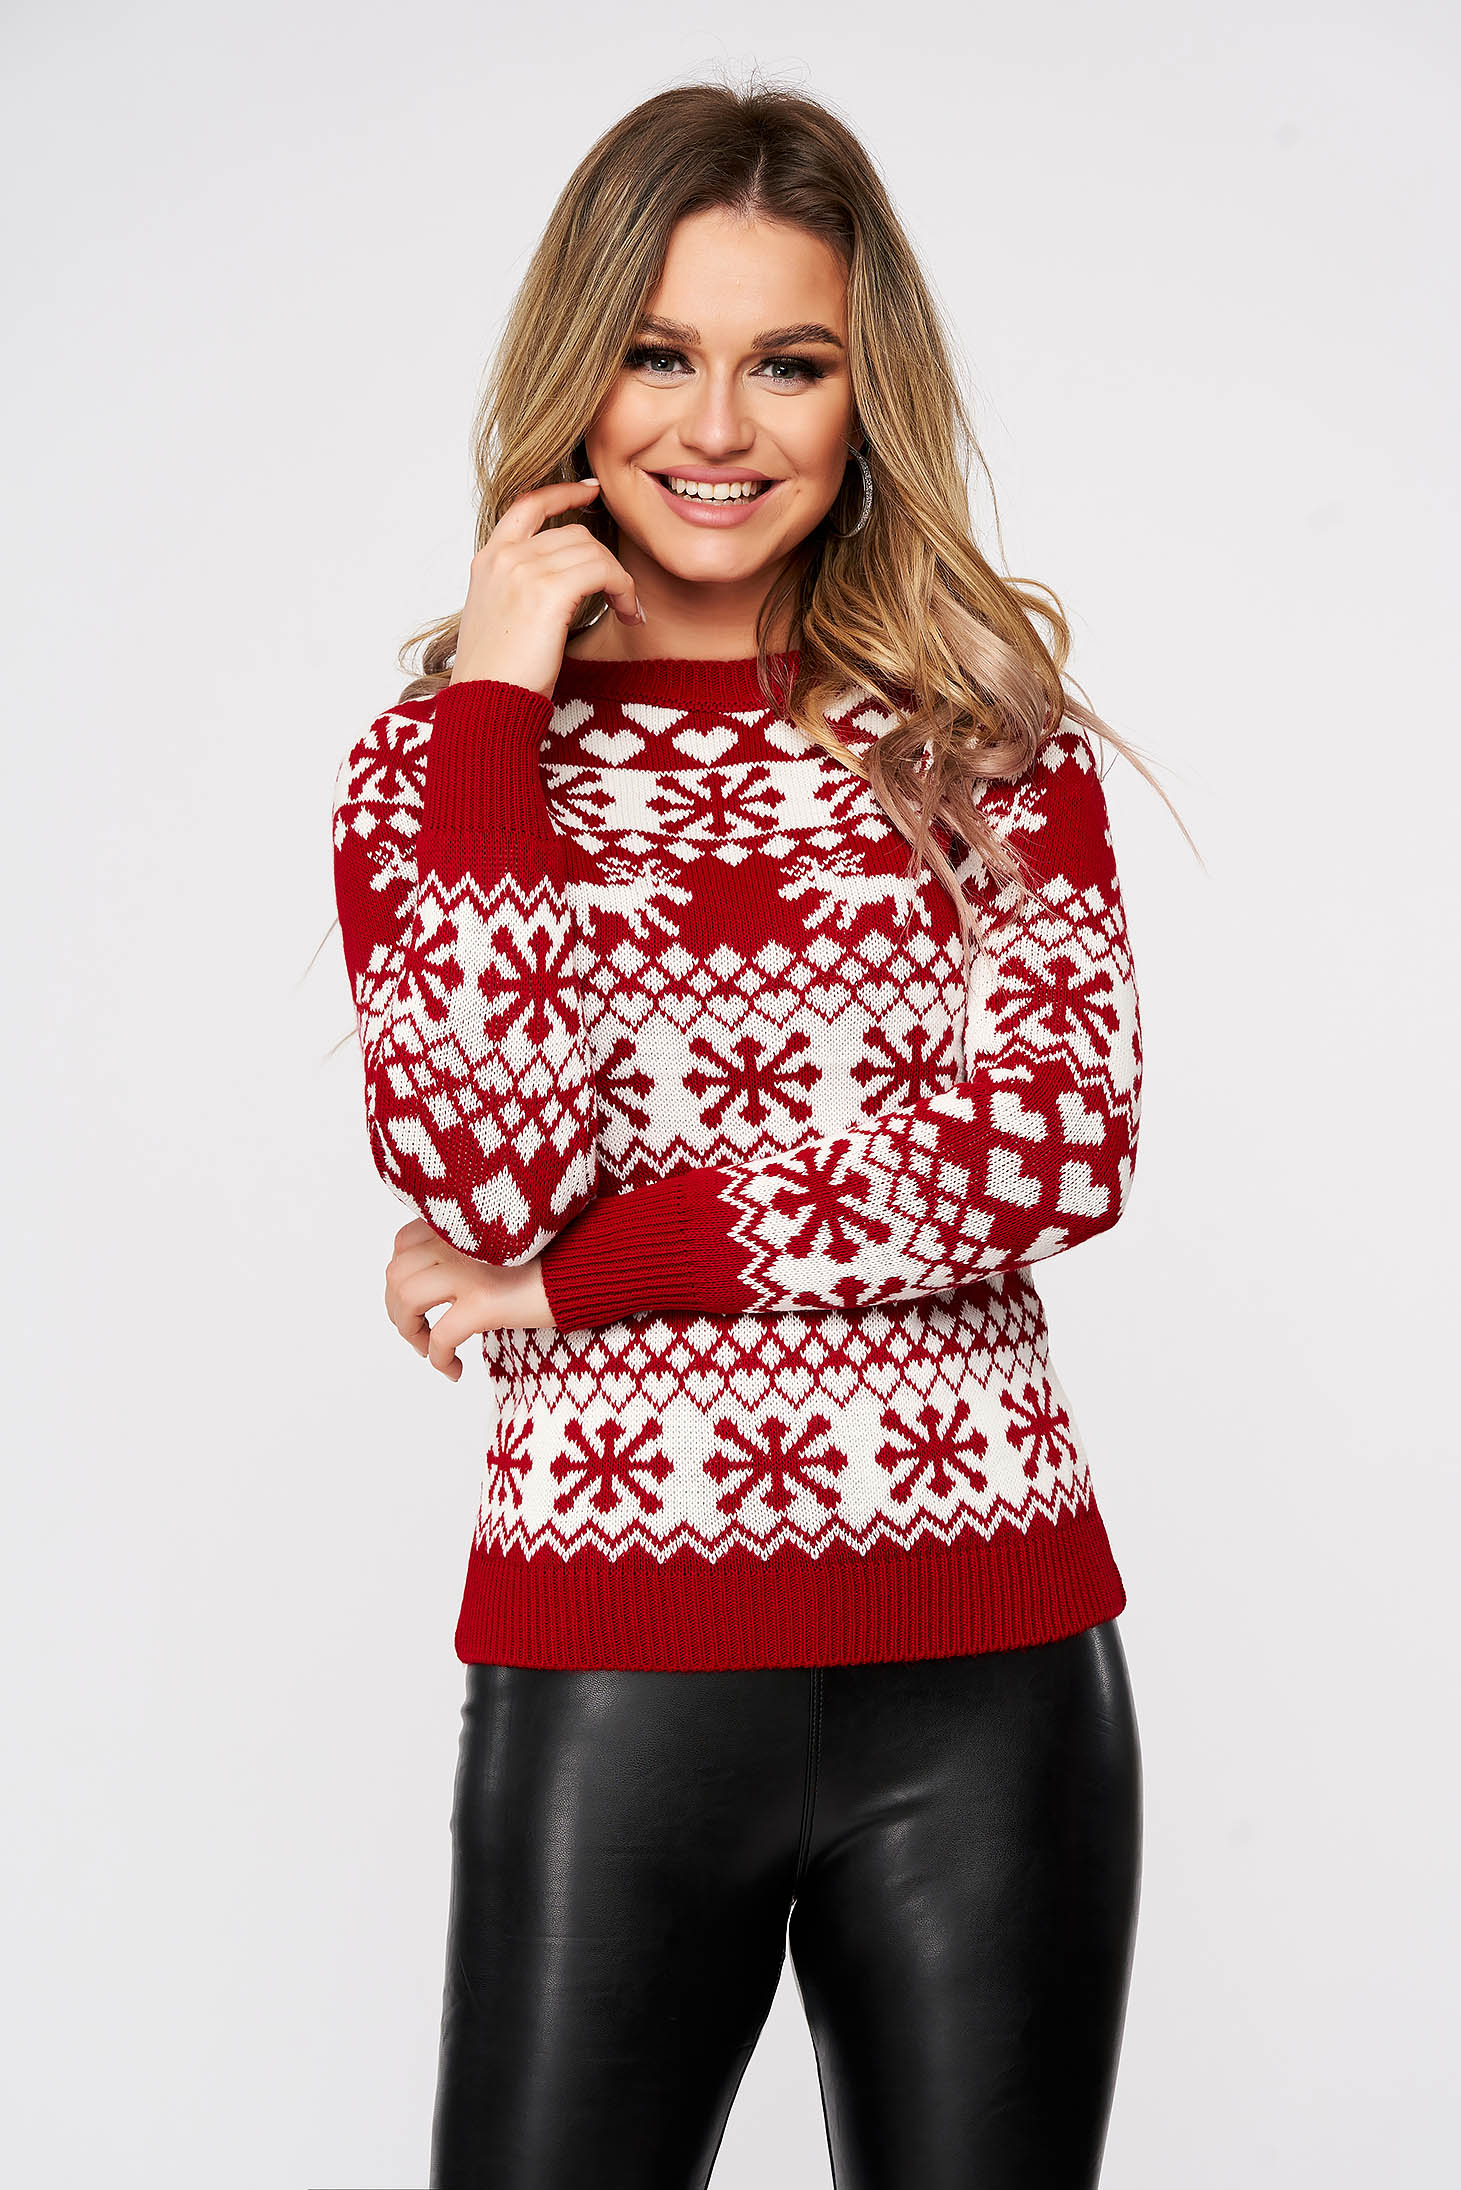 Red casual with print details sweater knitted fabric slightly elastic fabric